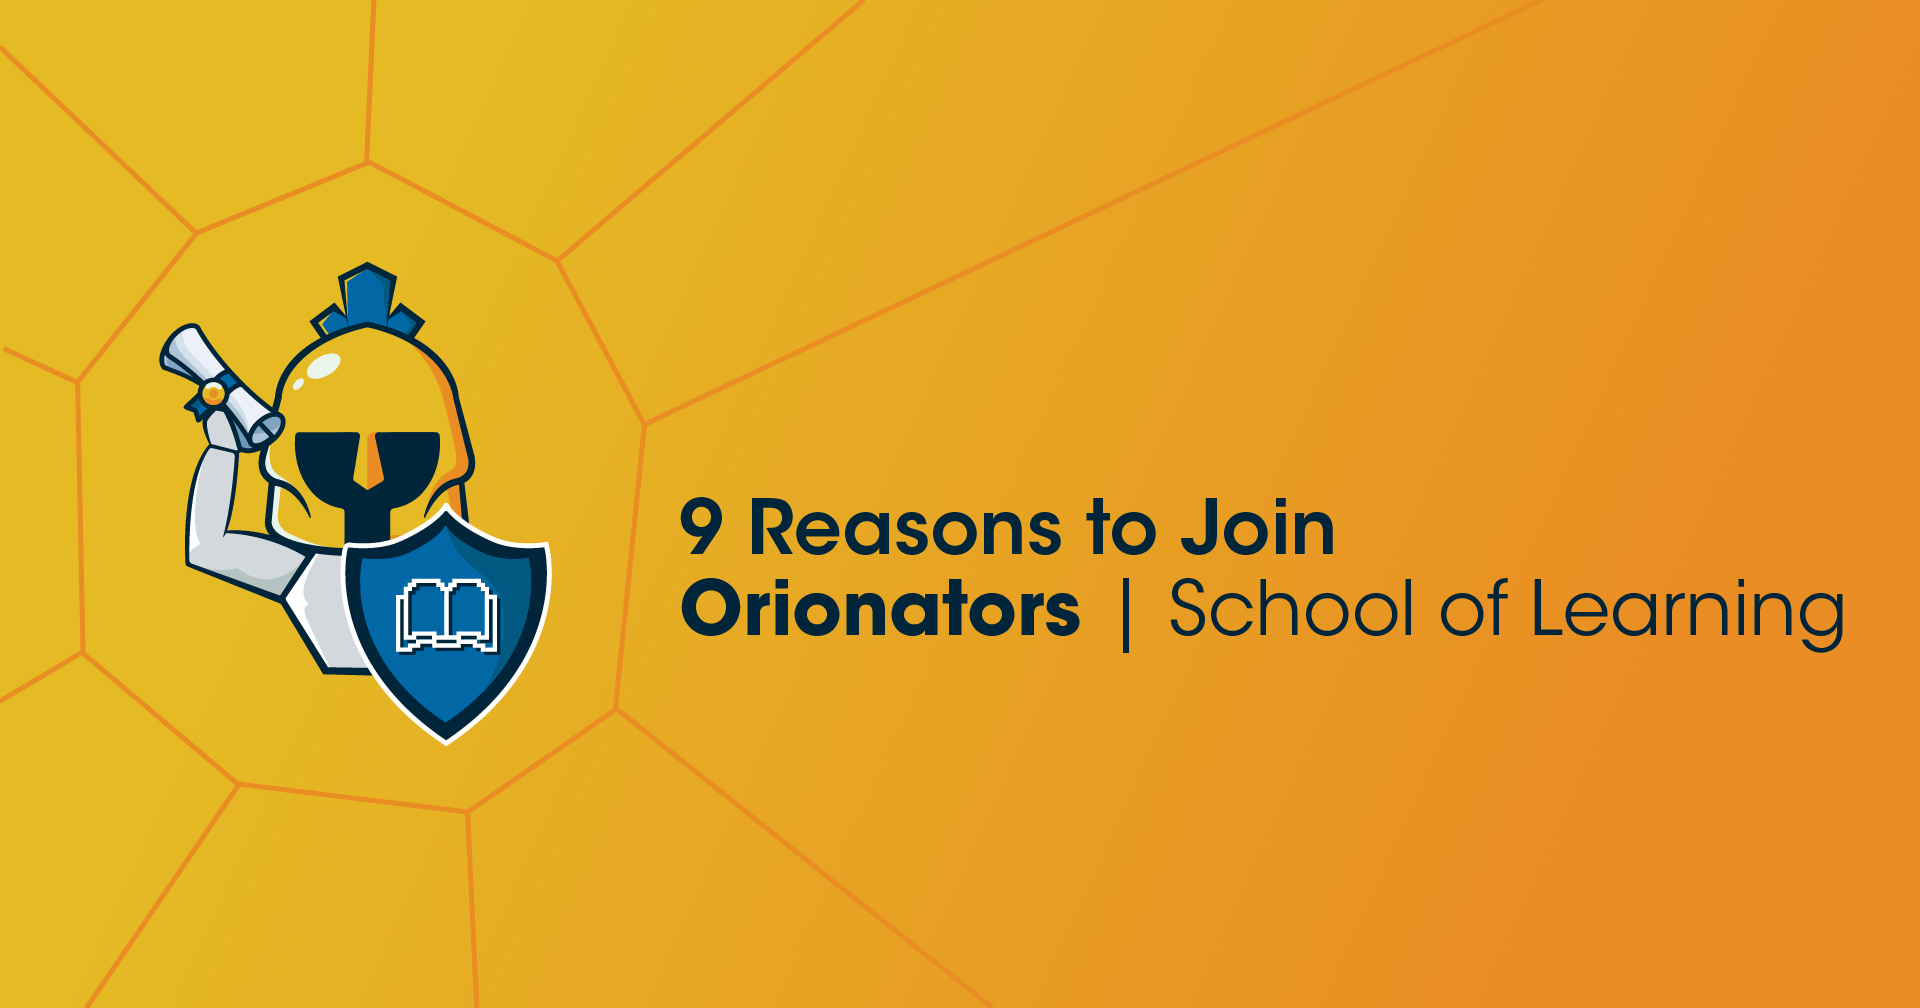 9 Reasons to Join Orionators School of Learning